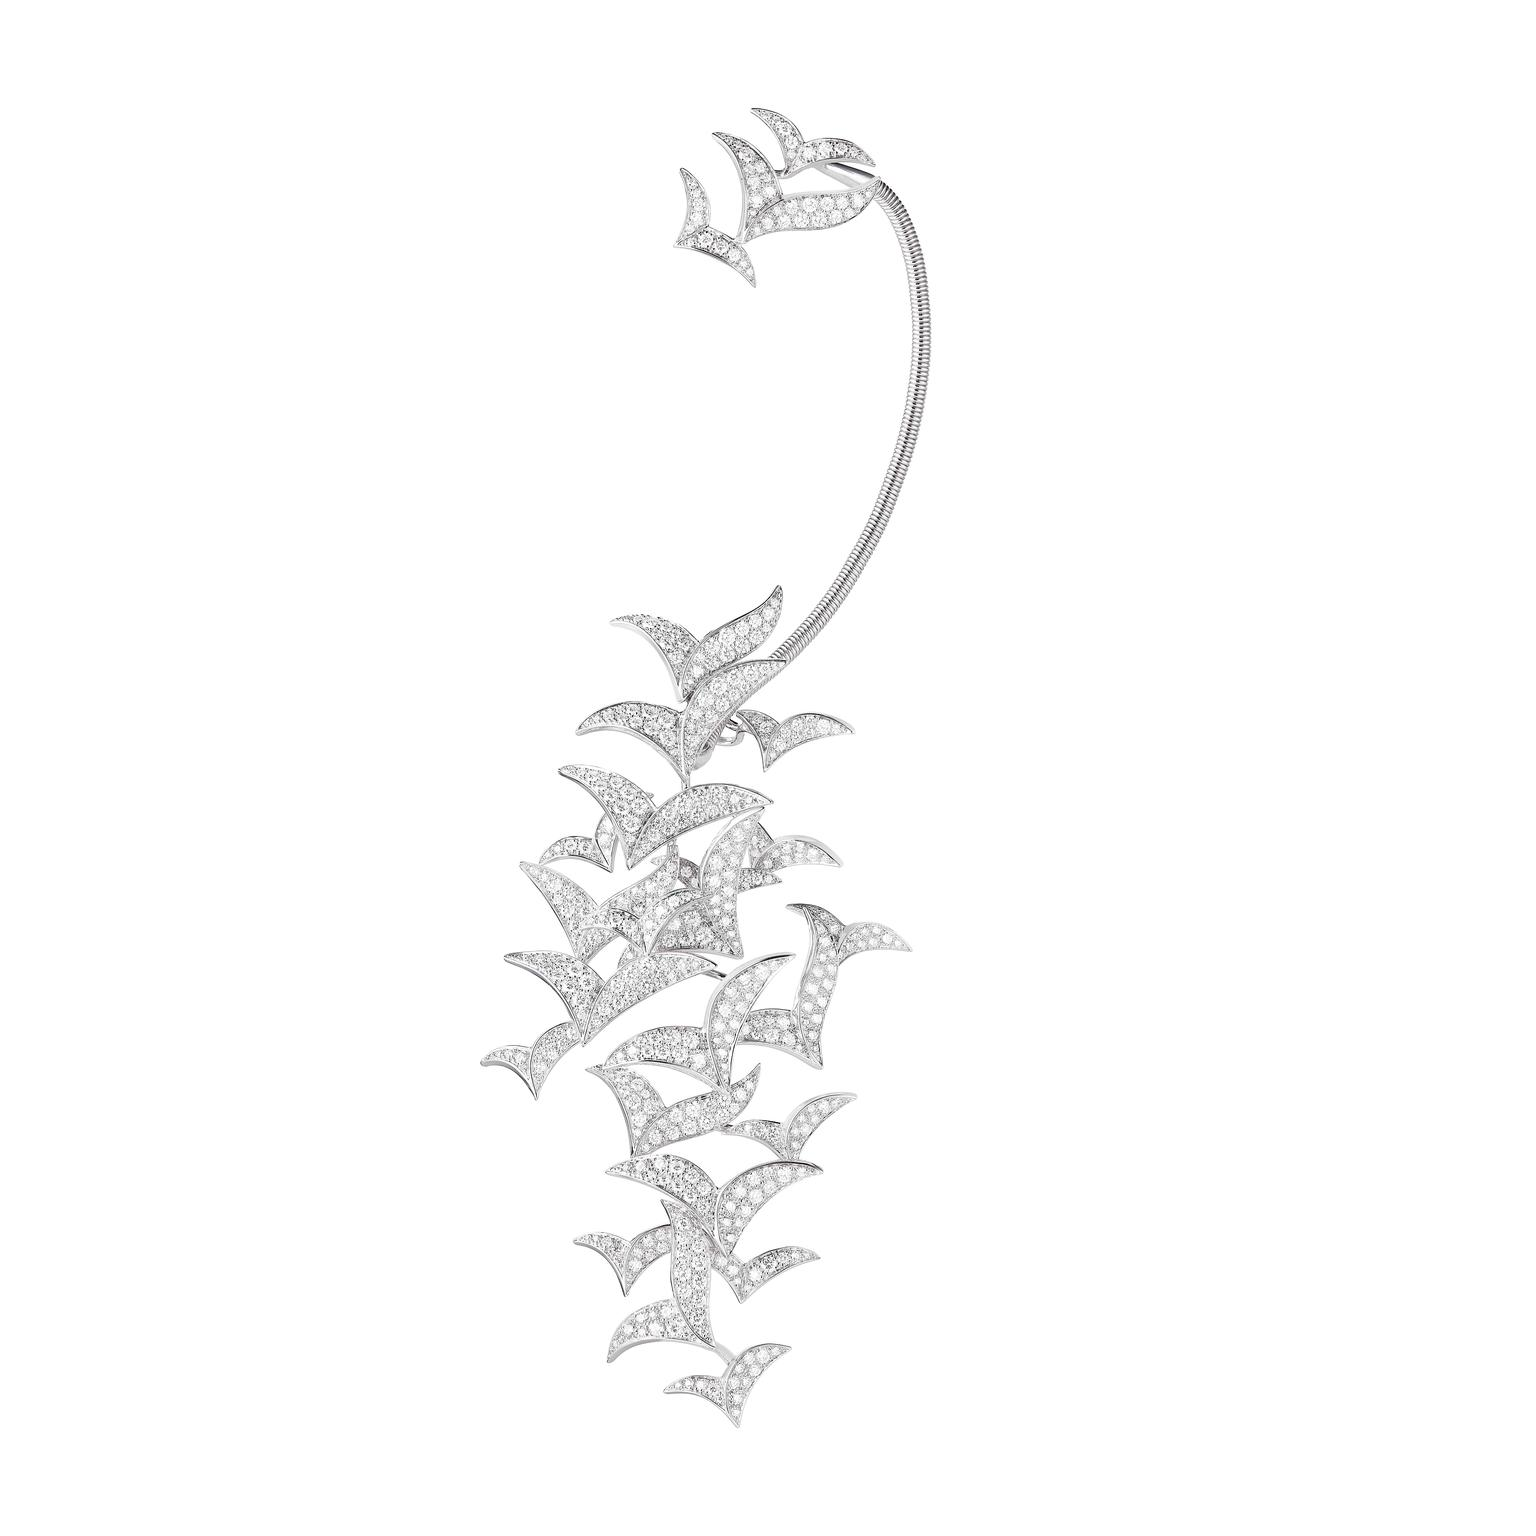 Boucheron Earring Murmuration - diamonds, white gold copy